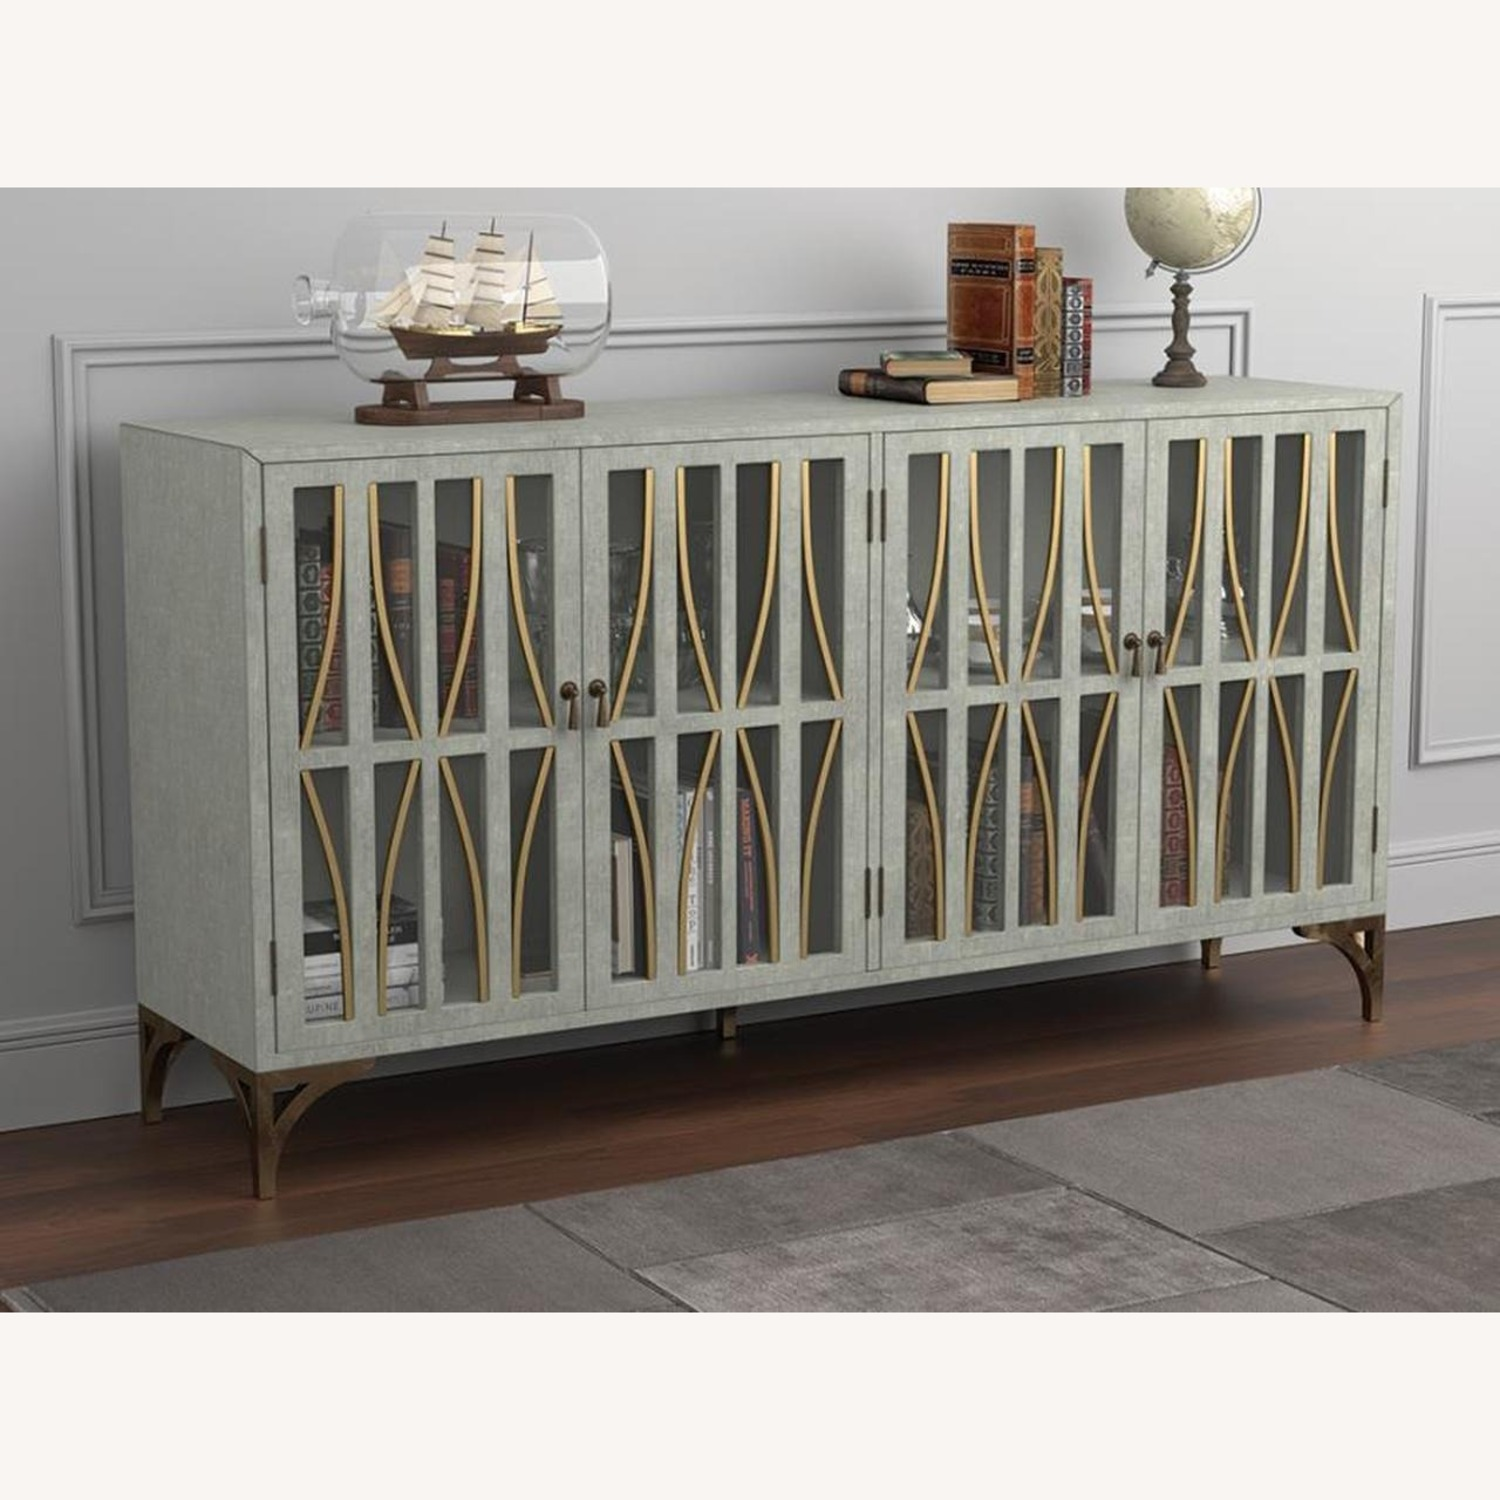 Contemporary Accent Cabinet In Grey Green Finish - image-4